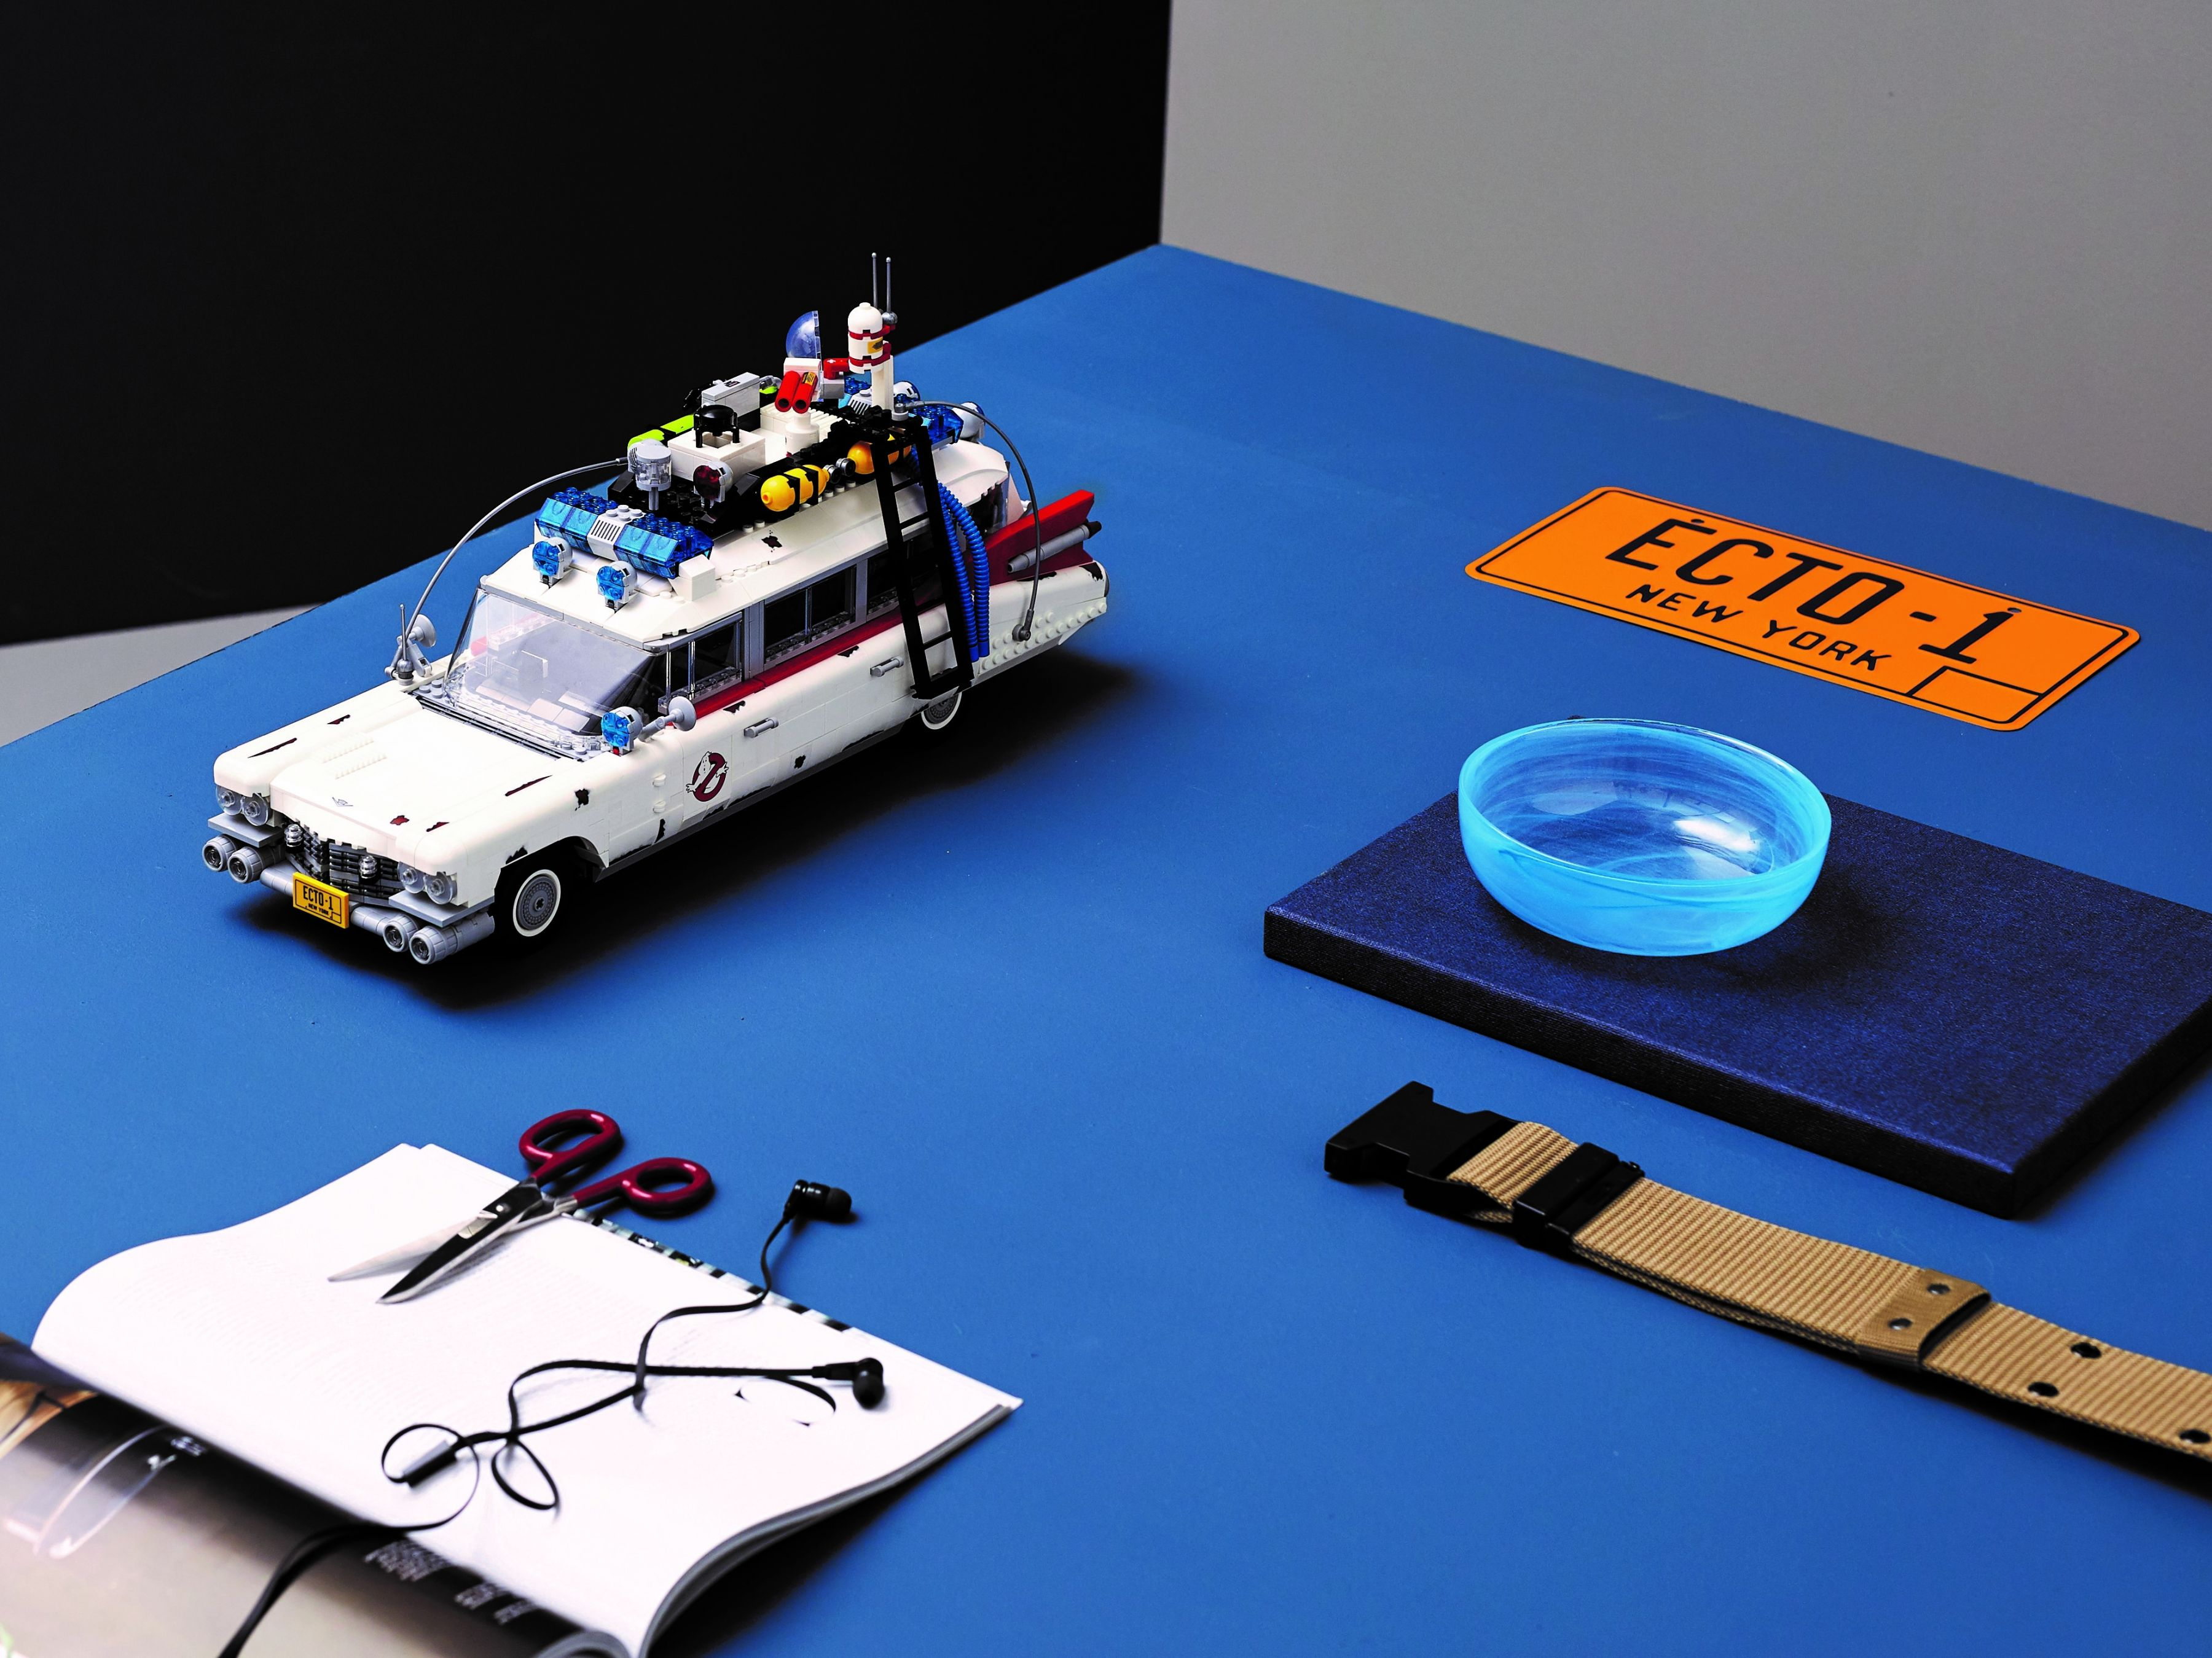 LEGO Advanced Models 10274 Ghostbusters™ ECTO-1 LEGO_10274_alt24.jpg